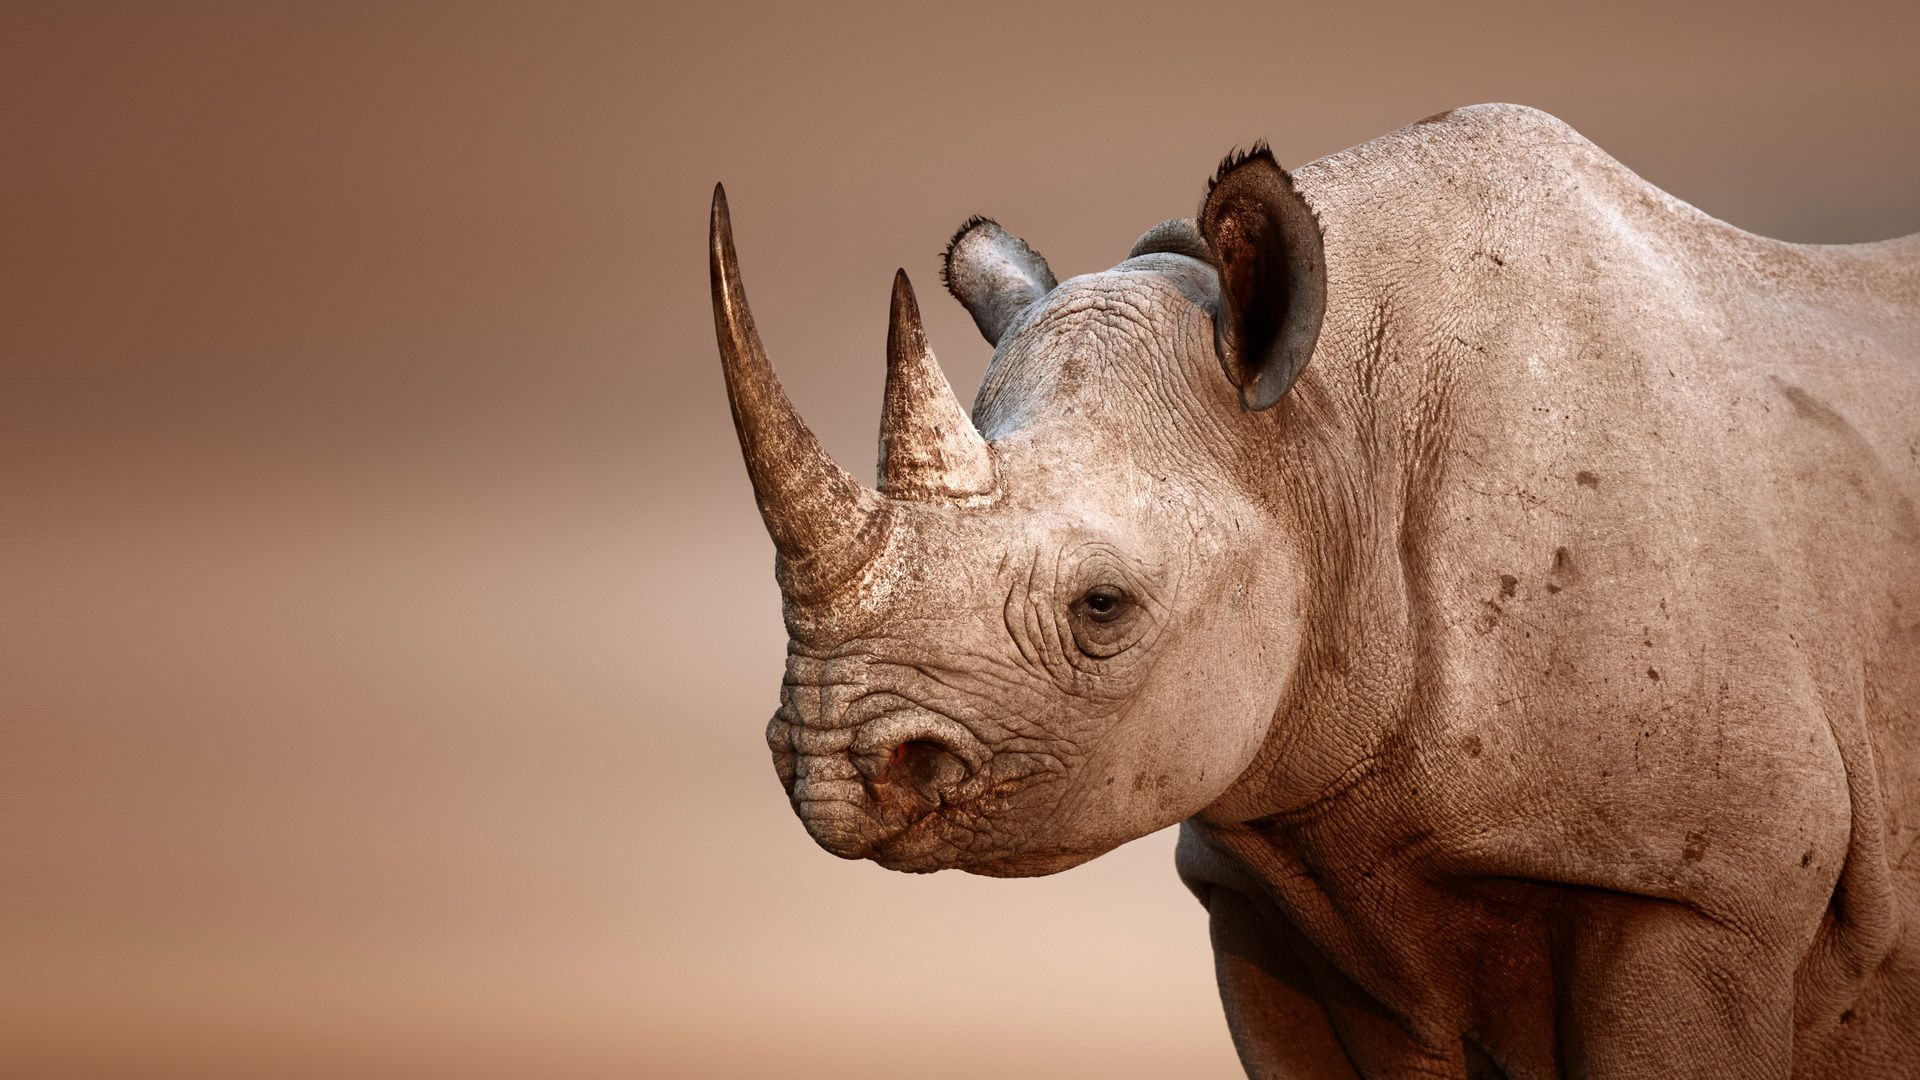 fantastic hd rhinoceros wallpapers | wallpapers | pinterest